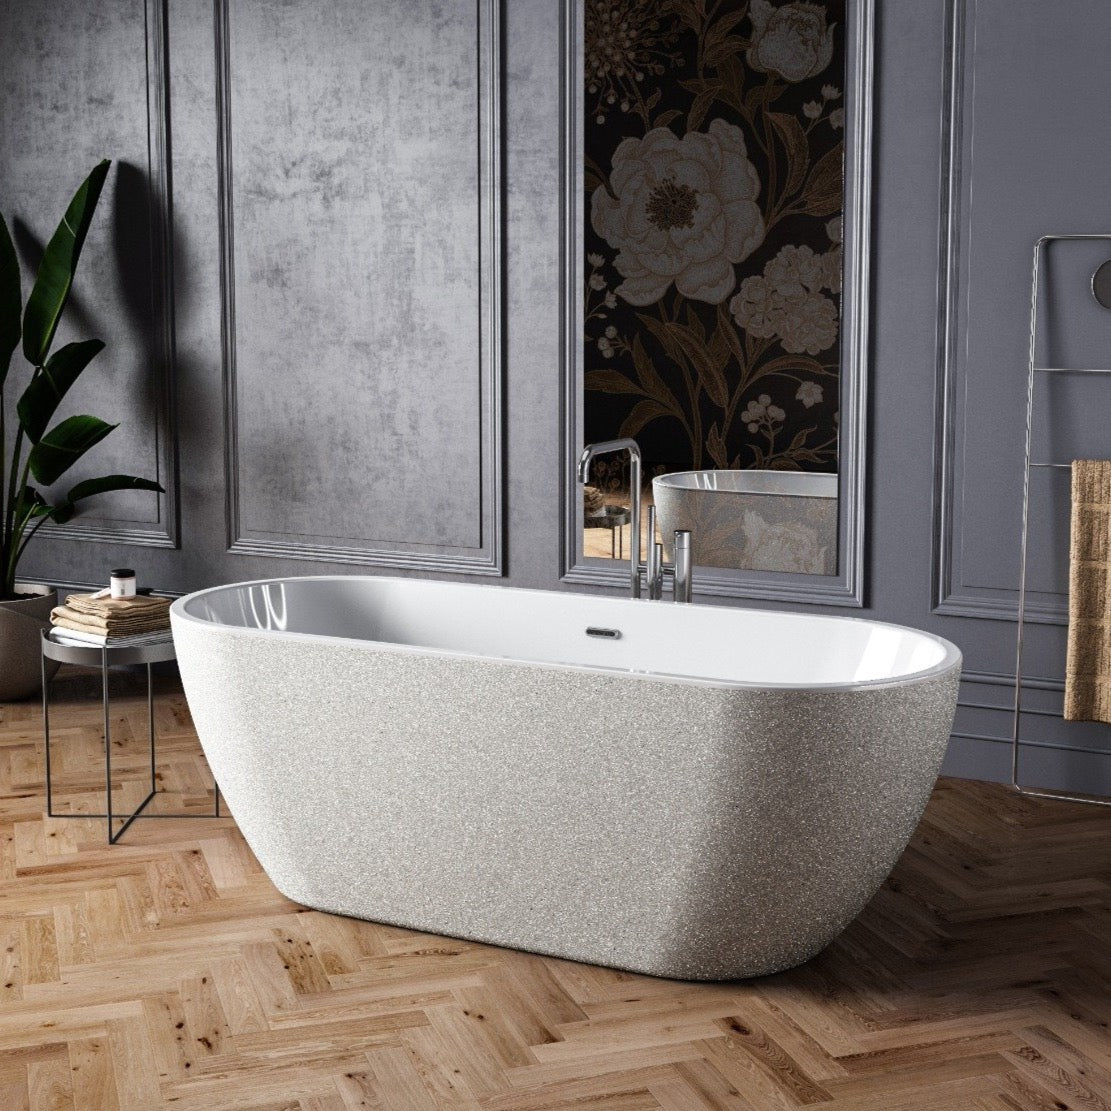 Charlotte Edwards Sparkling Silver 1690mm Belgravia Contemporary Freestanding Bath